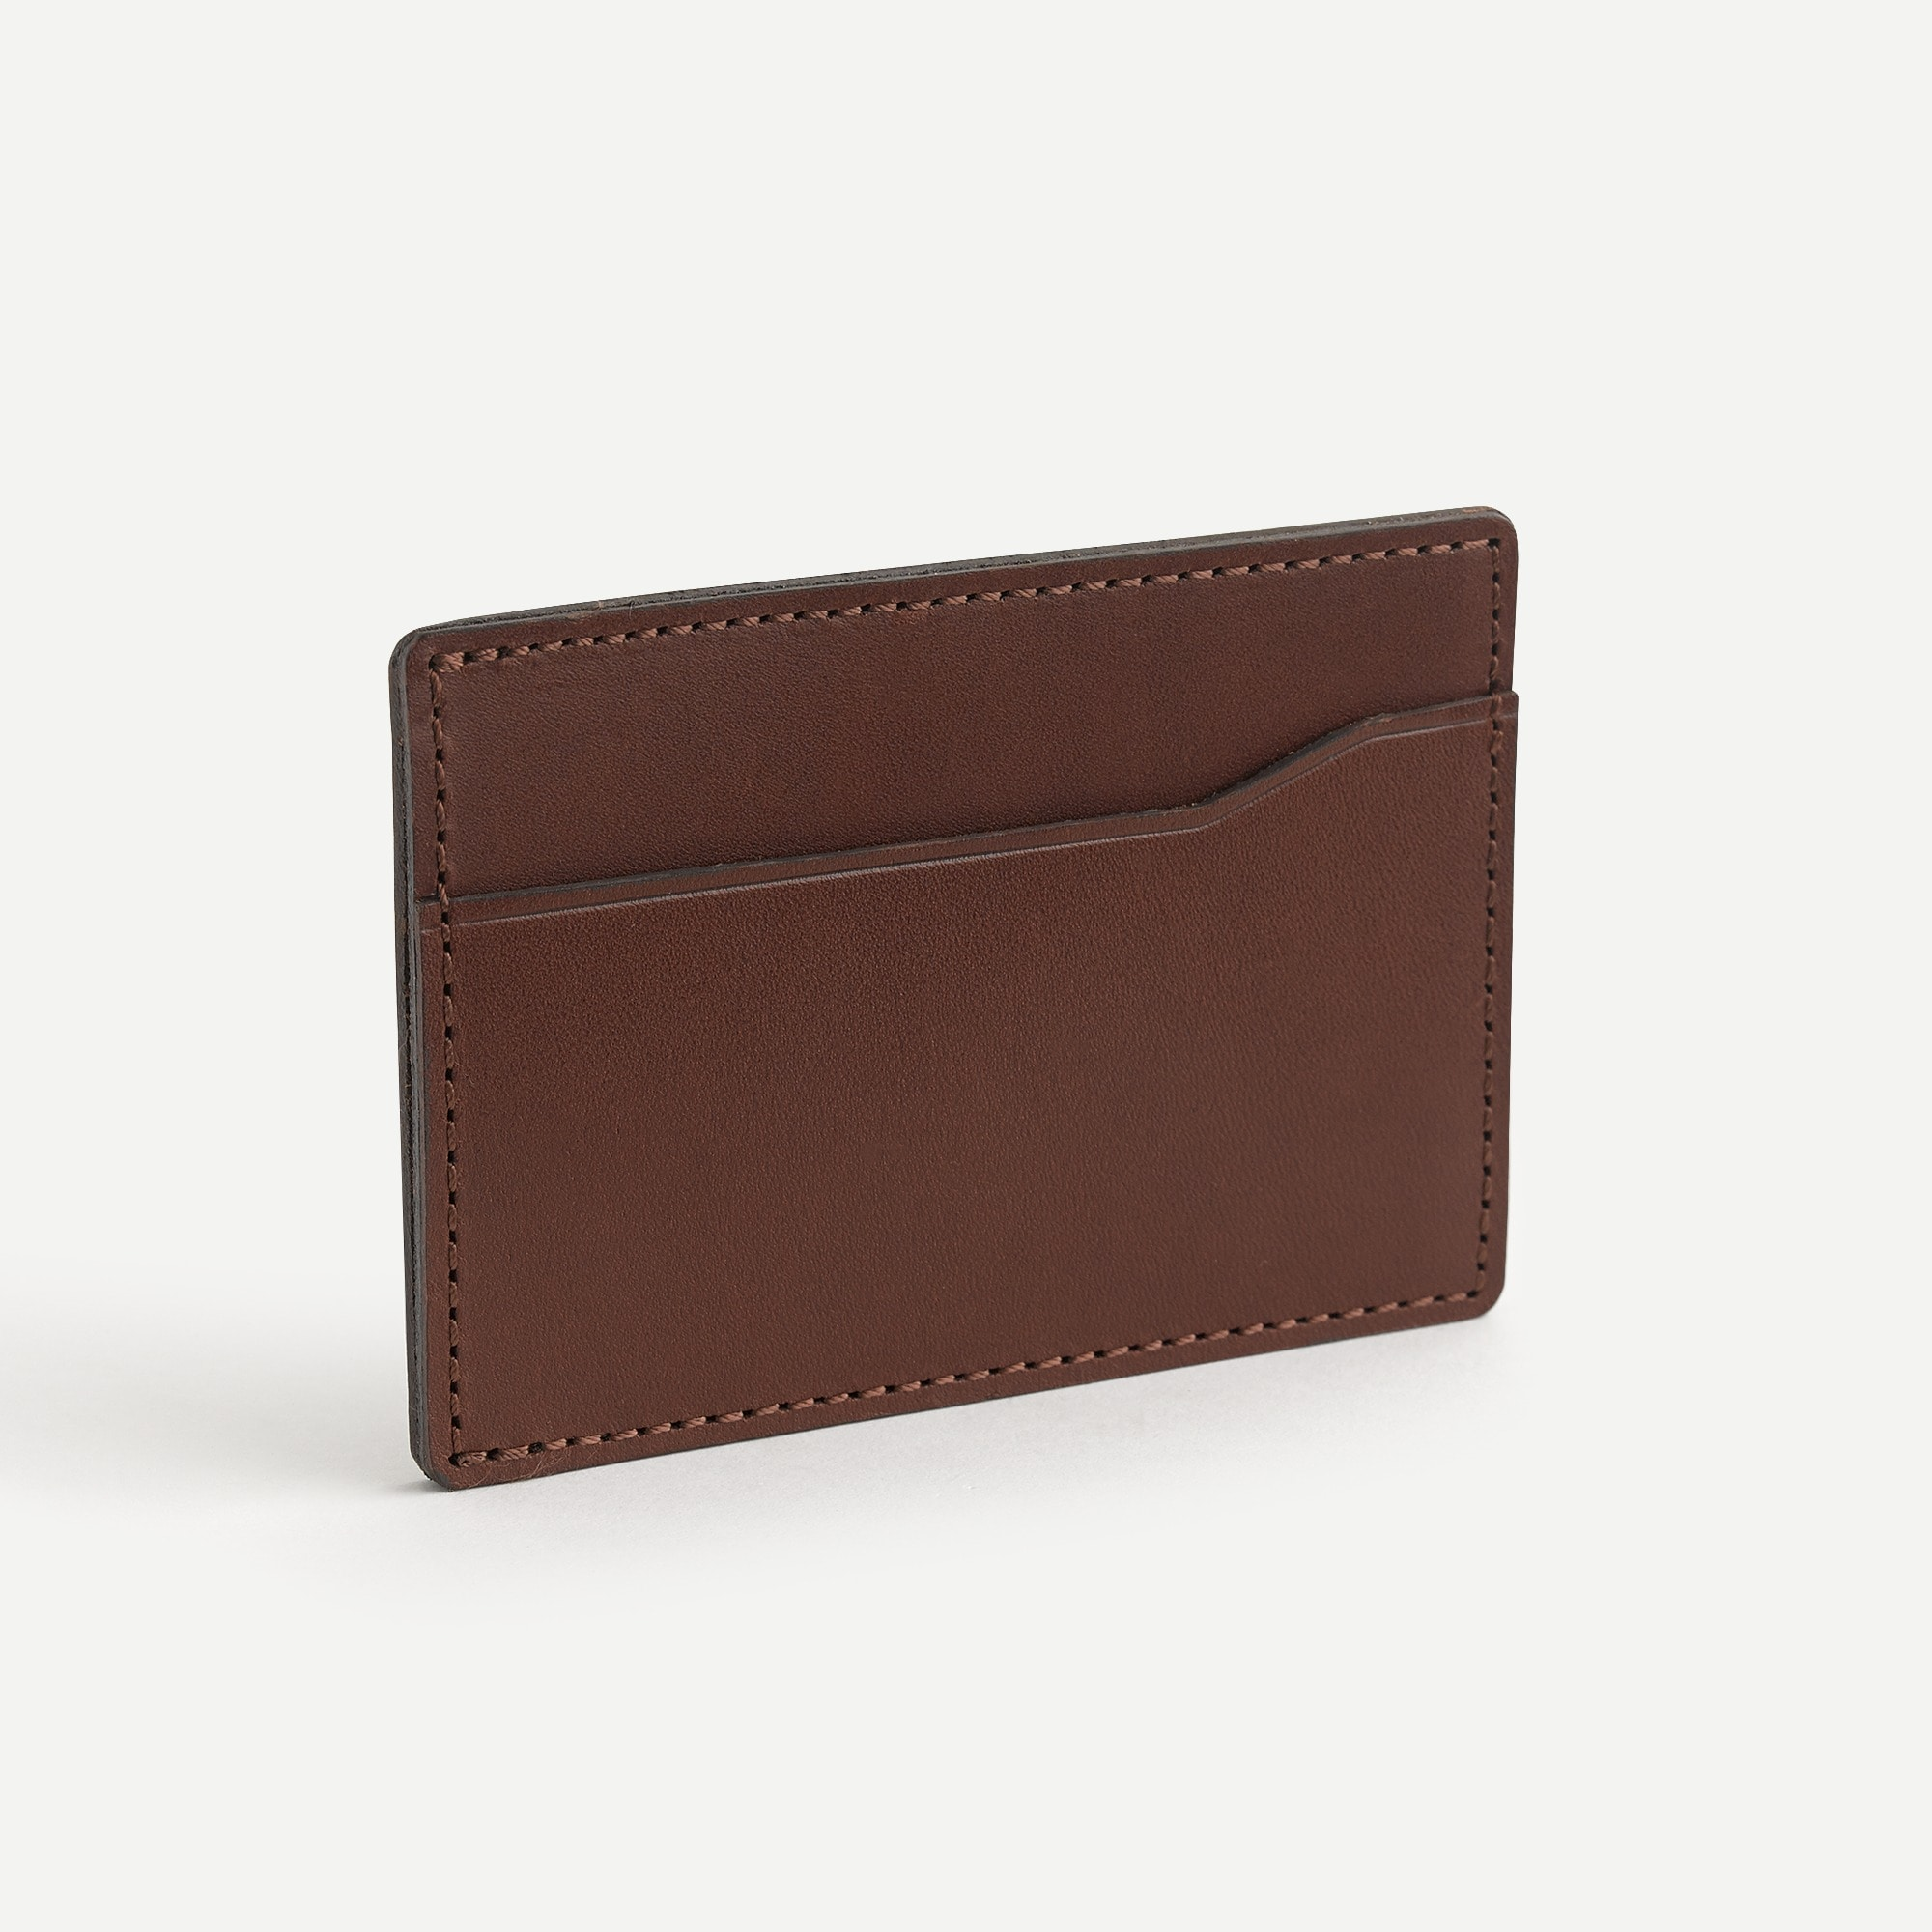 Card case in Italian leather